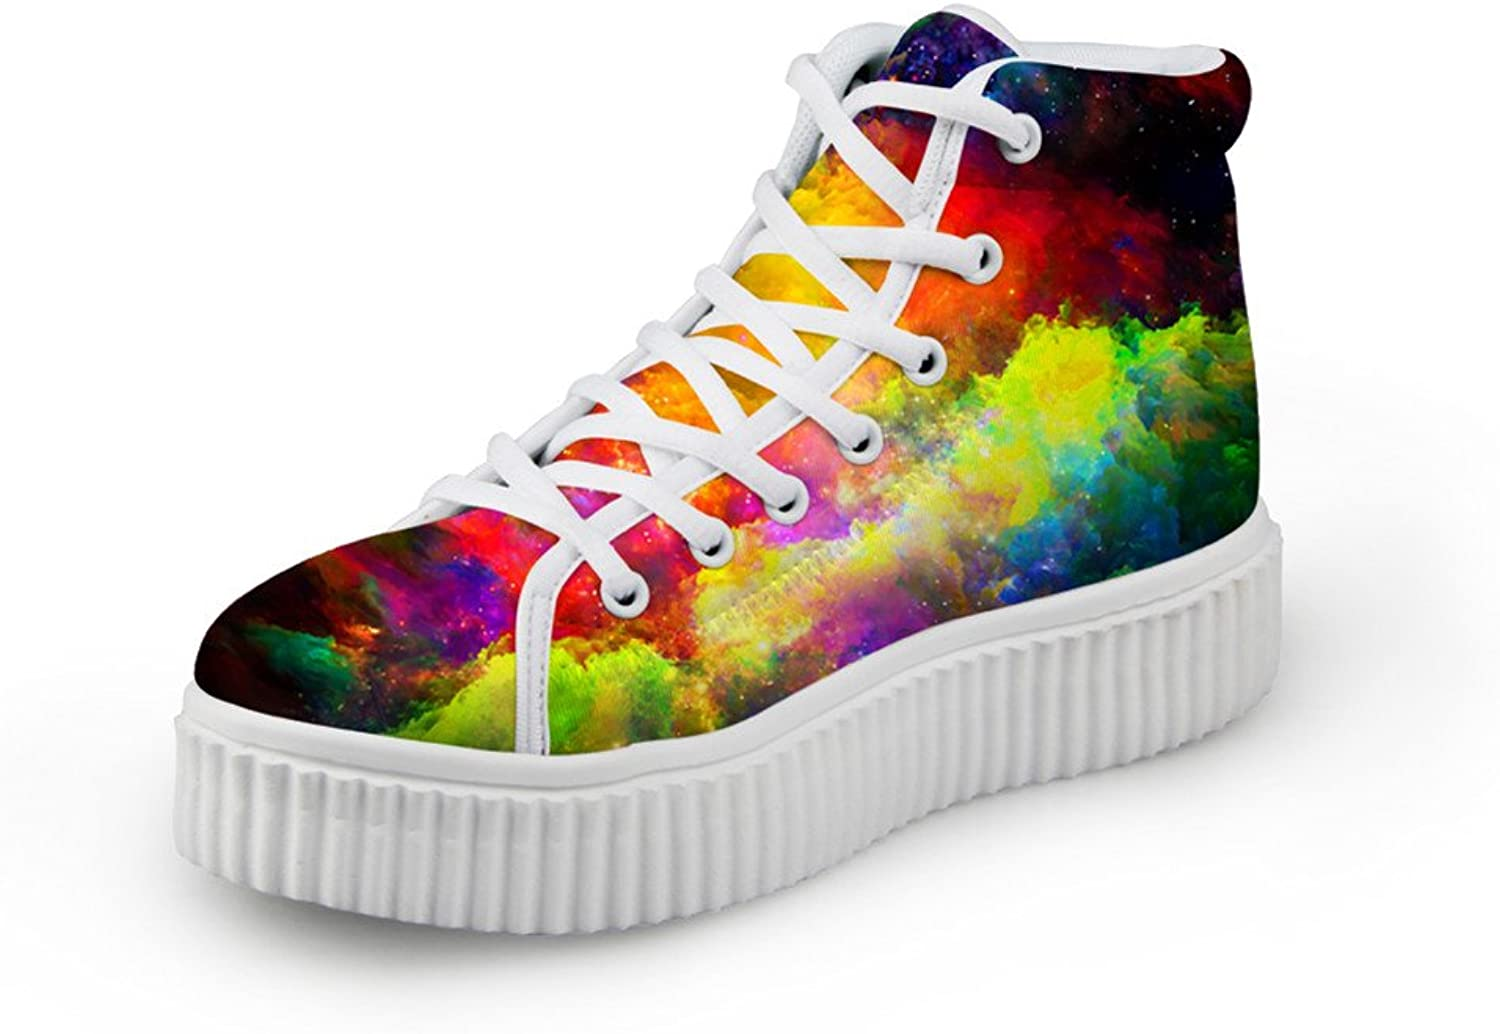 Bigcardesigns Classical Galaxy Design High Top Casual Sneakers Lace Up Flat shoes Unisex